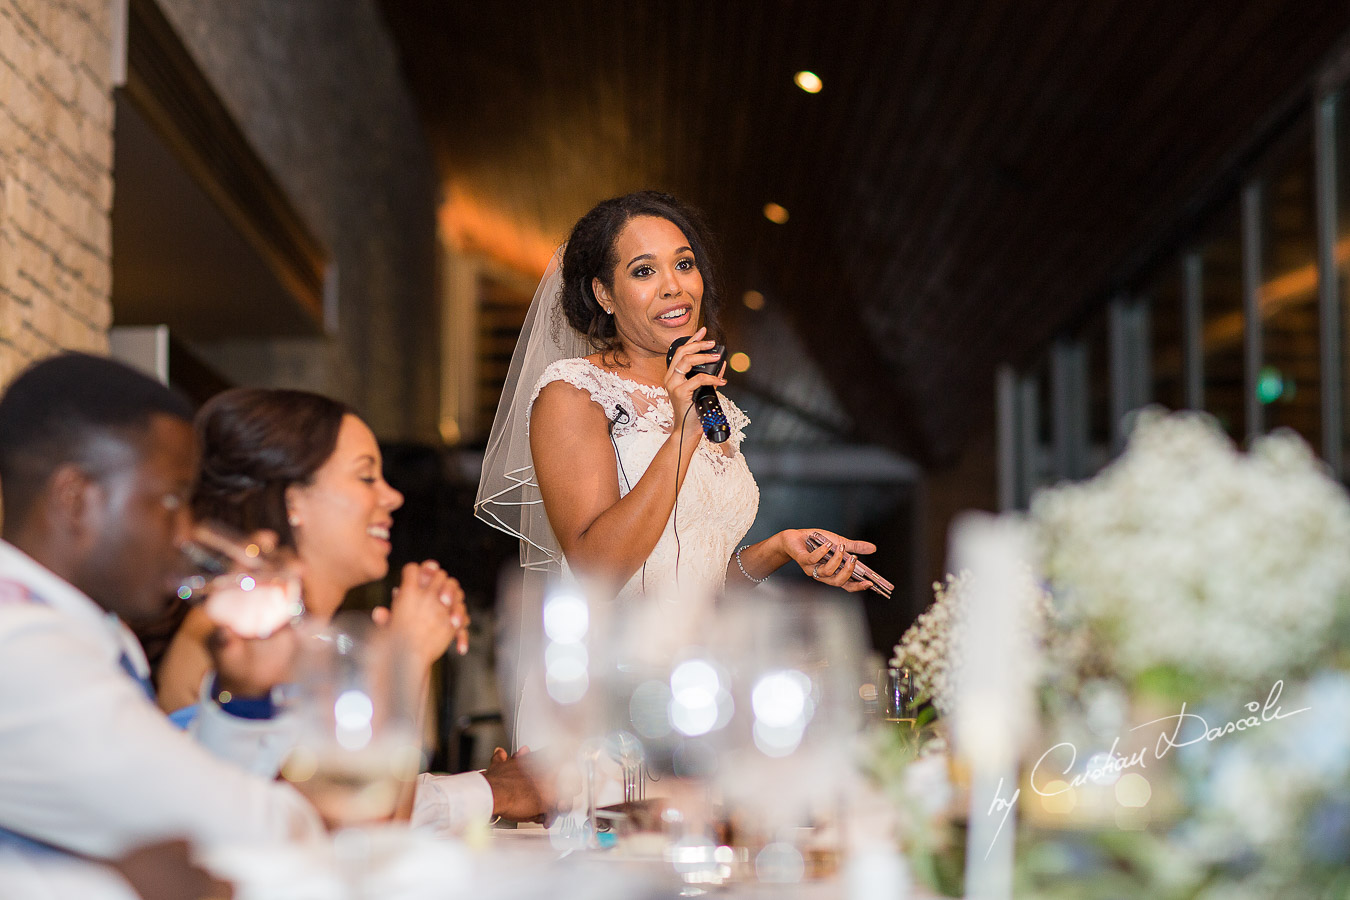 Bride speech moment captured at a wedding at Minthis Hills in Cyprus, by Cristian Dascalu.